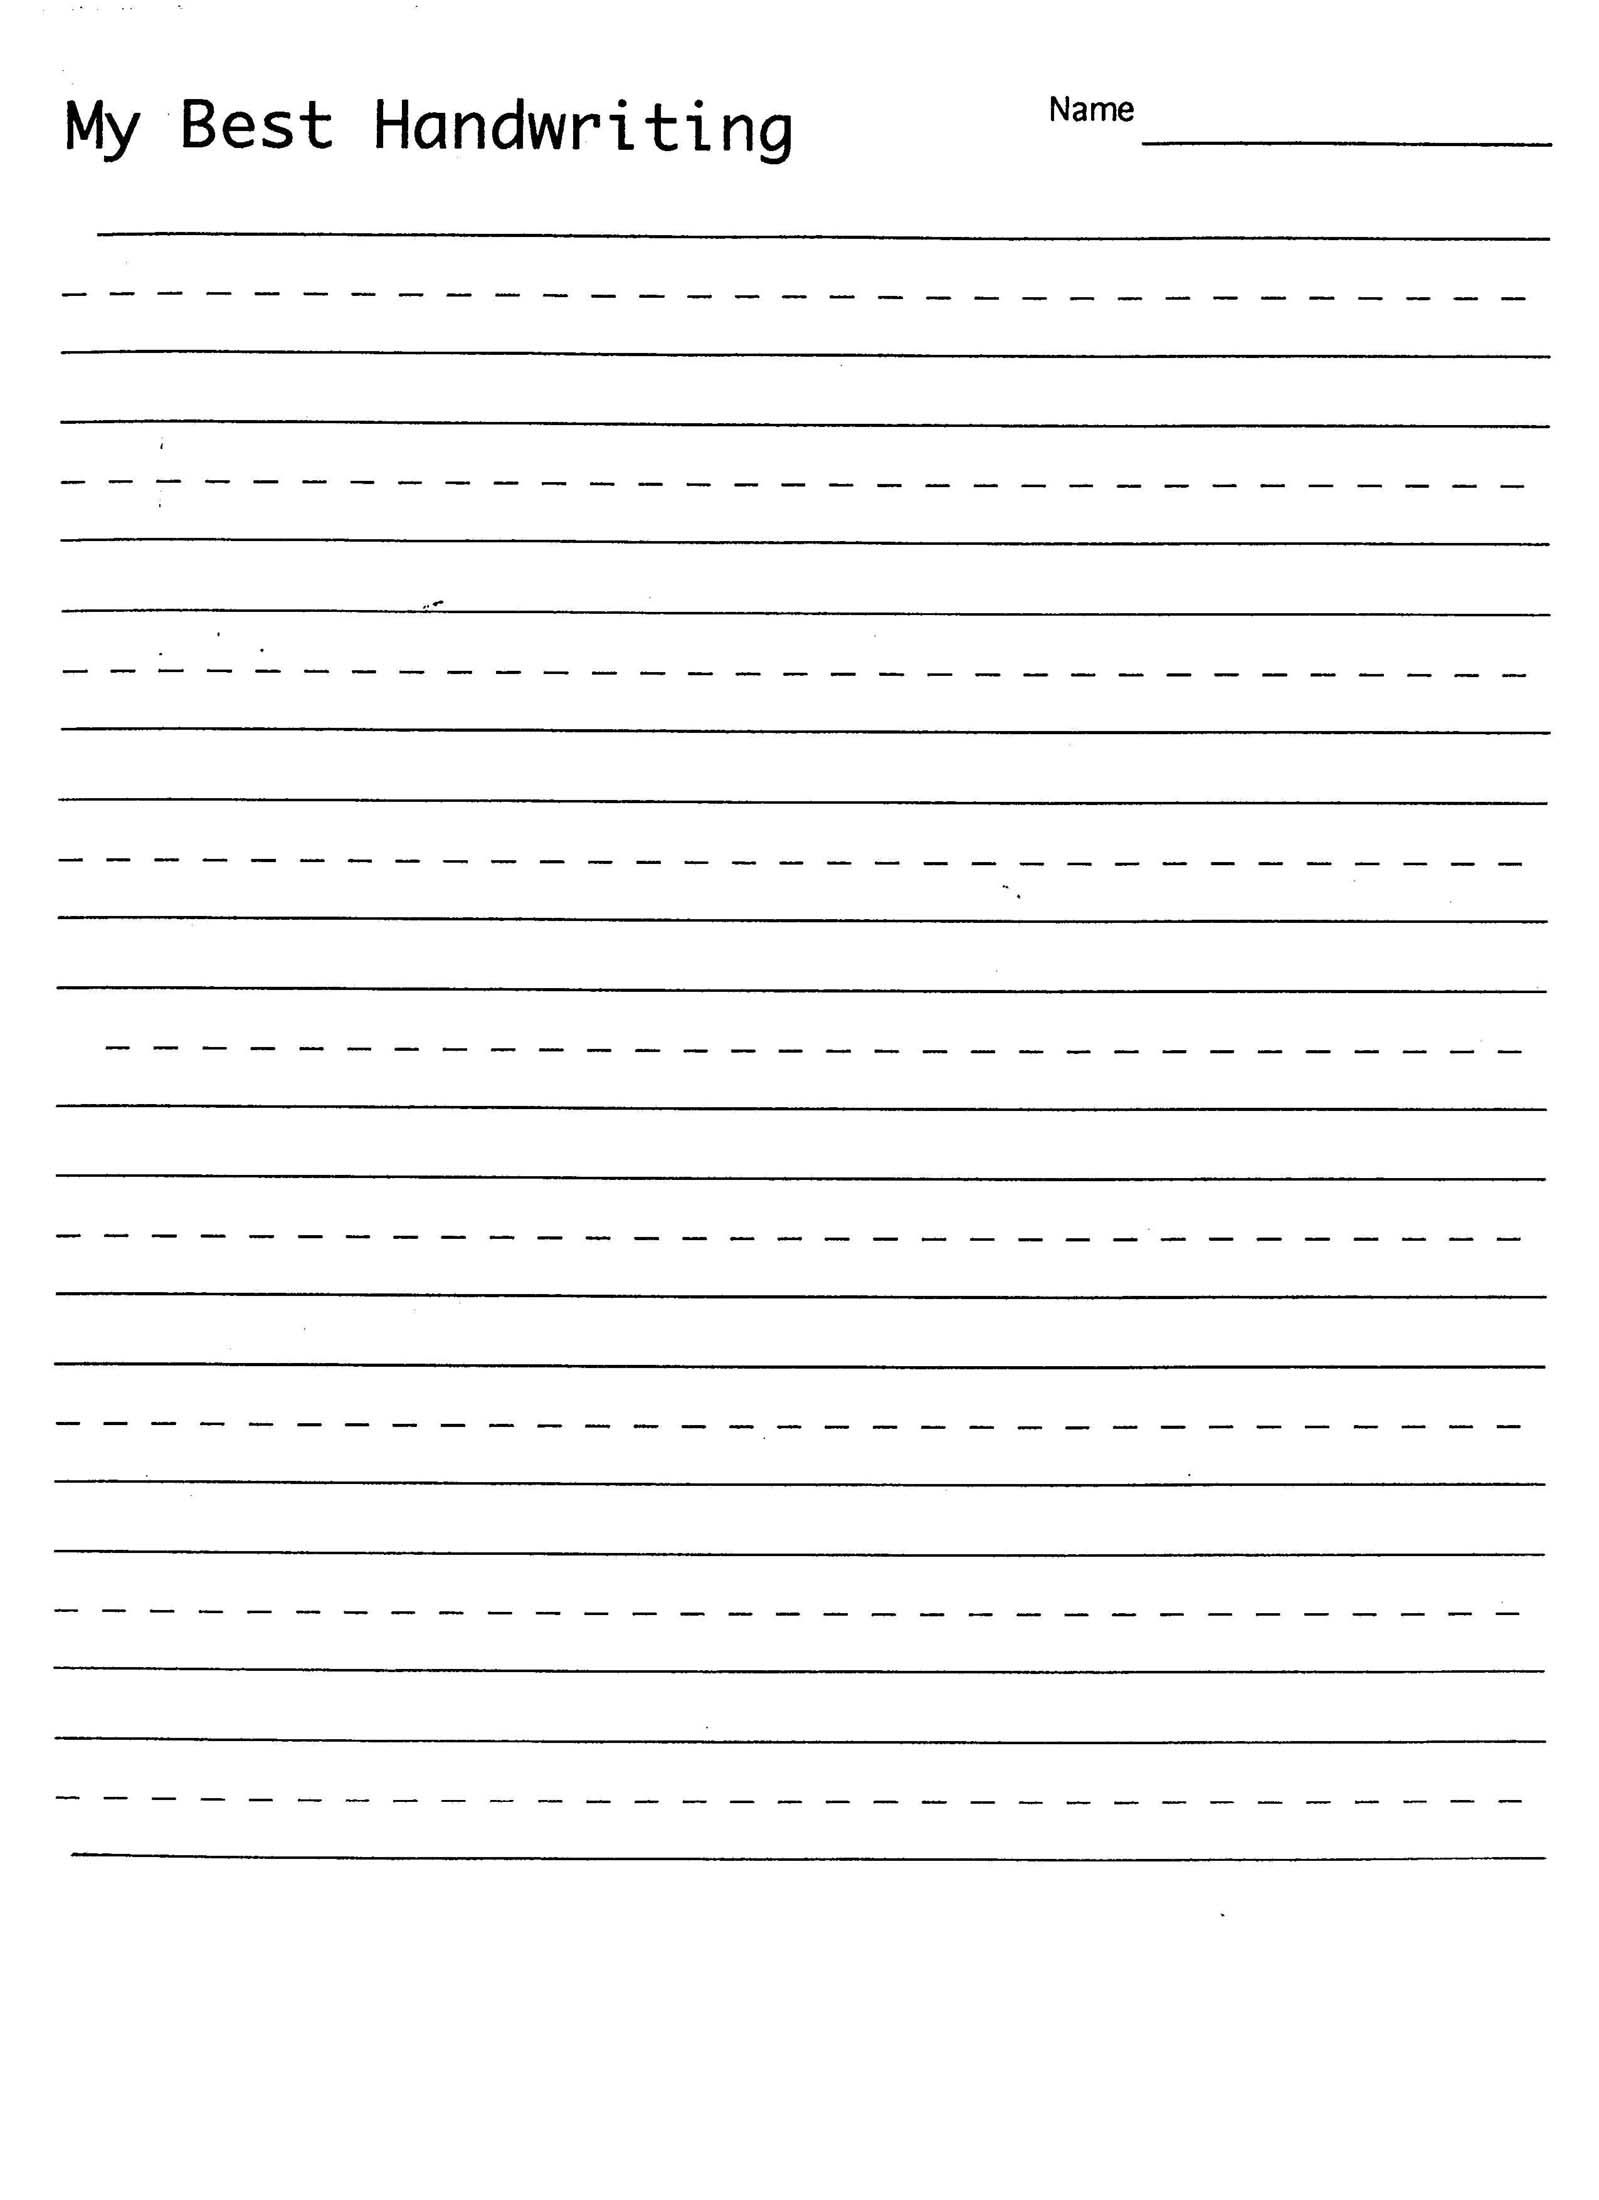 Worksheets Free Printable Handwriting Worksheets handwriting practice sheet child education pinterest 6 best images of free printable blank writing worksheet sheet